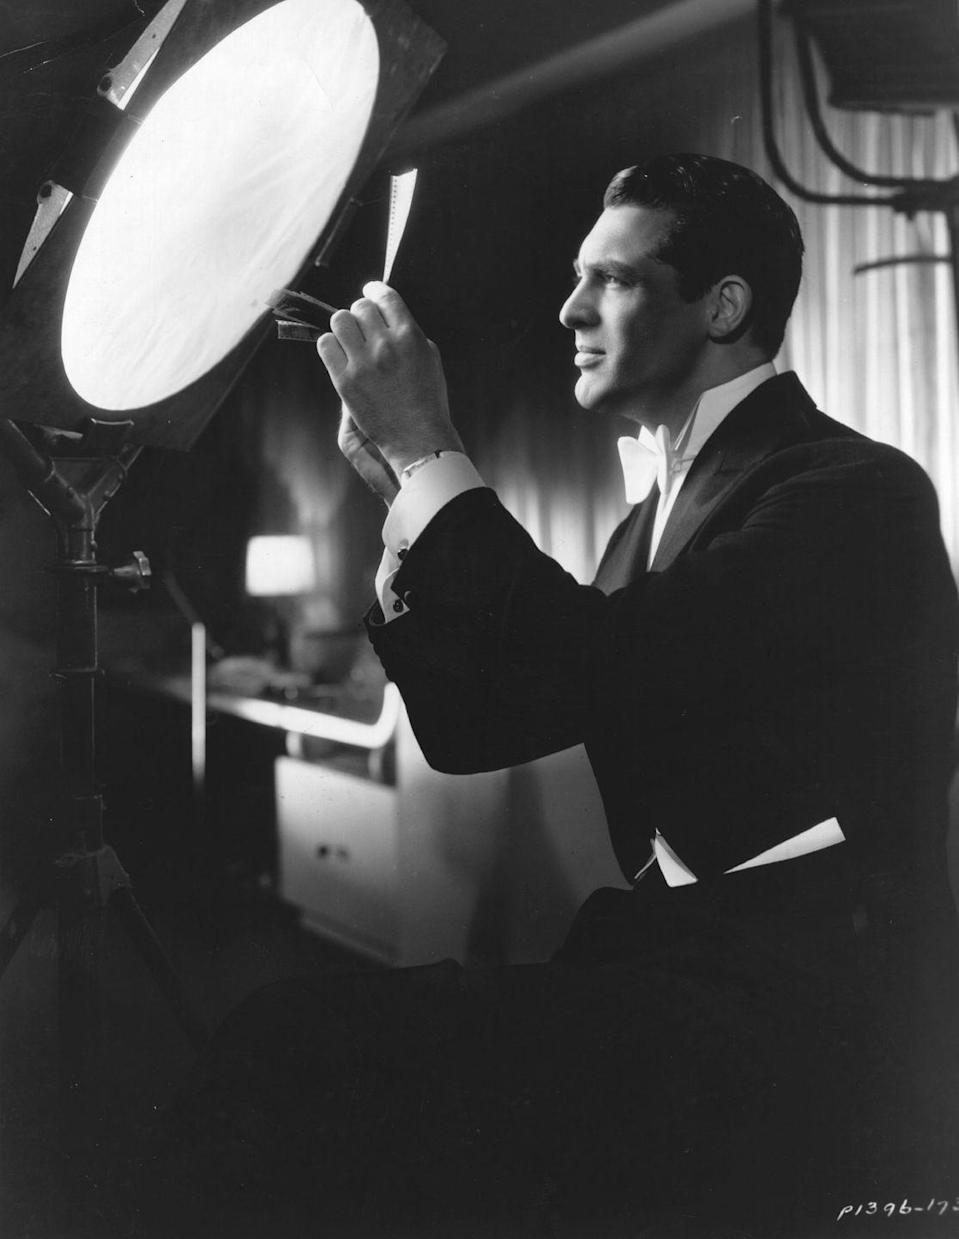 """<p>In 1928, the aspiring actor had his first screen test, after being scouted in a play on Broadway, however he <a href=""""https://www.universityfox.com/stories/cary-grants-daughter-and-former-wife-talk-about-his-struggles-with-family-life/"""" rel=""""nofollow noopener"""" target=""""_blank"""" data-ylk=""""slk:reportedly failed to nail the audition"""" class=""""link rapid-noclick-resp"""">reportedly failed to nail the audition</a>.</p>"""